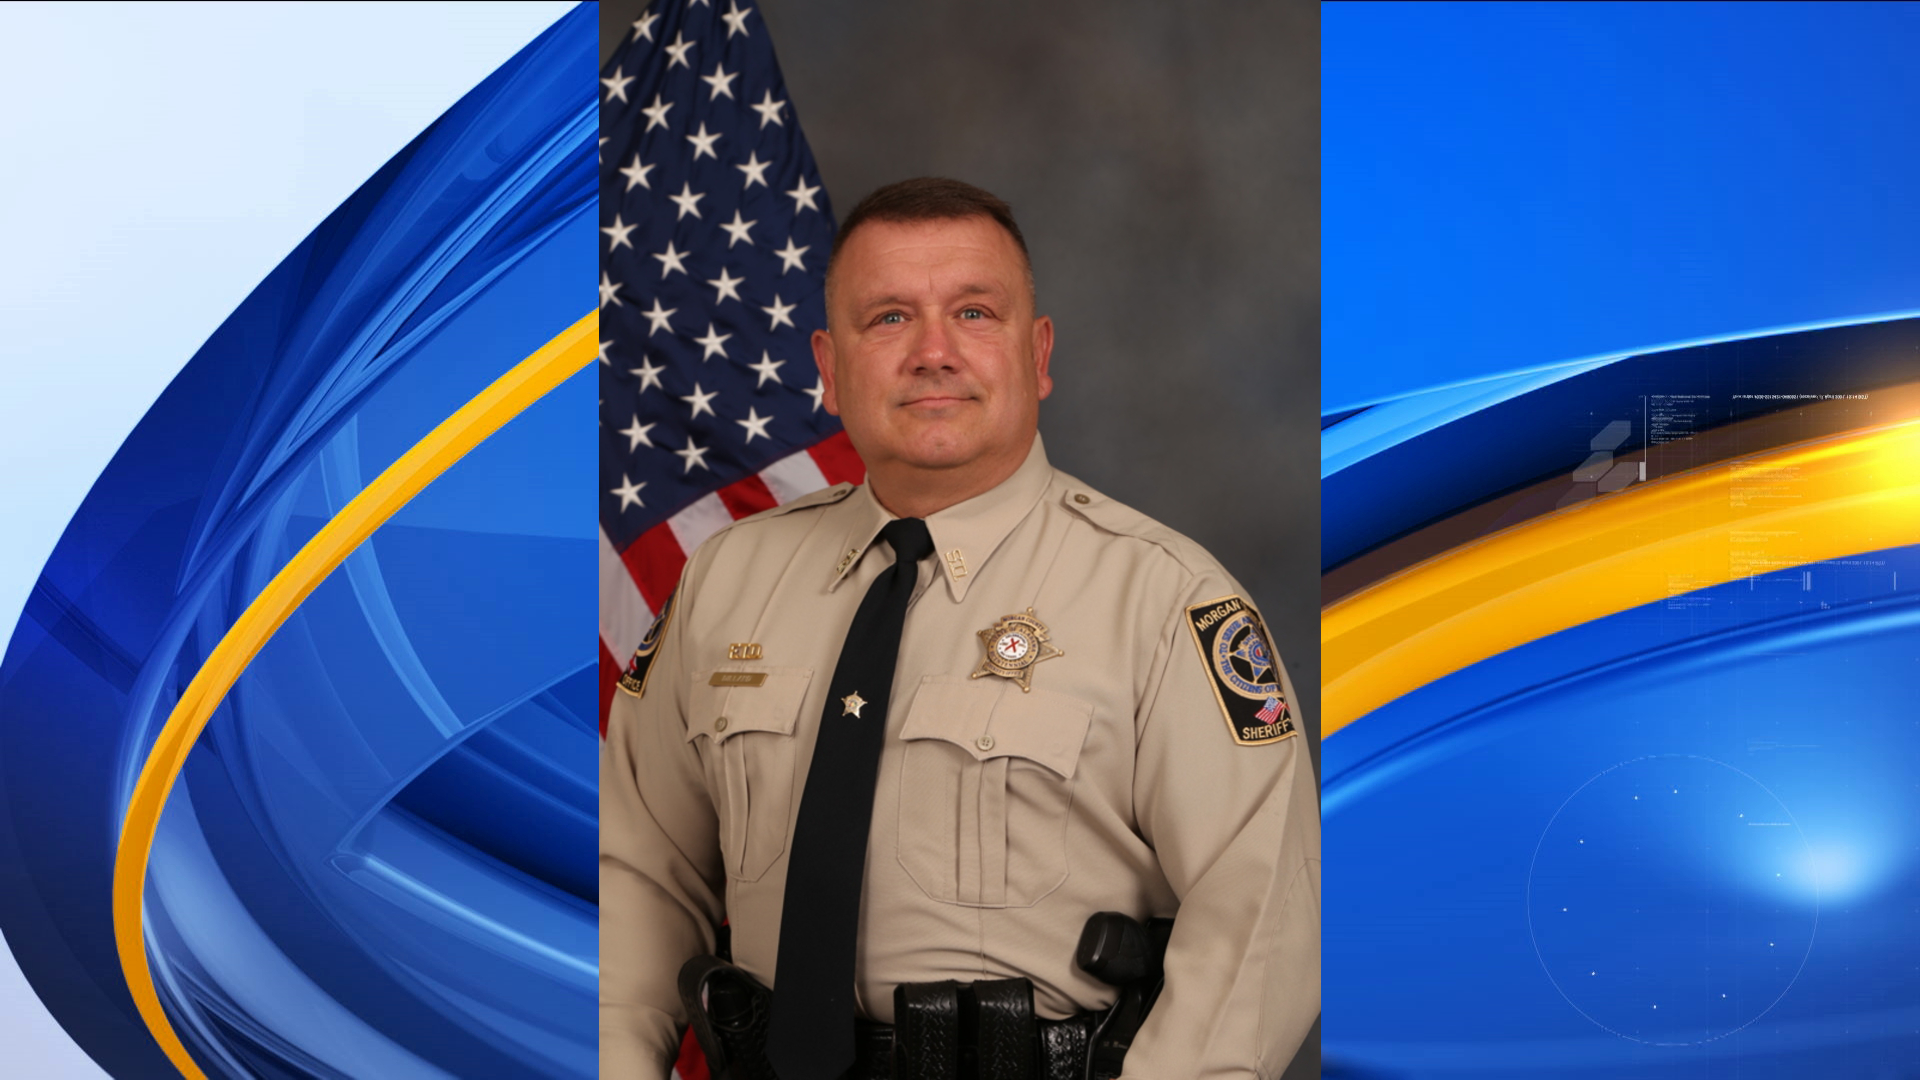 Just one year shy of retirement, Morgan County Sheriff's Office Sgt. Chris Dillard has been diagnosed with ALS. (Photo courtesy Morgan County Sheriff's Office)